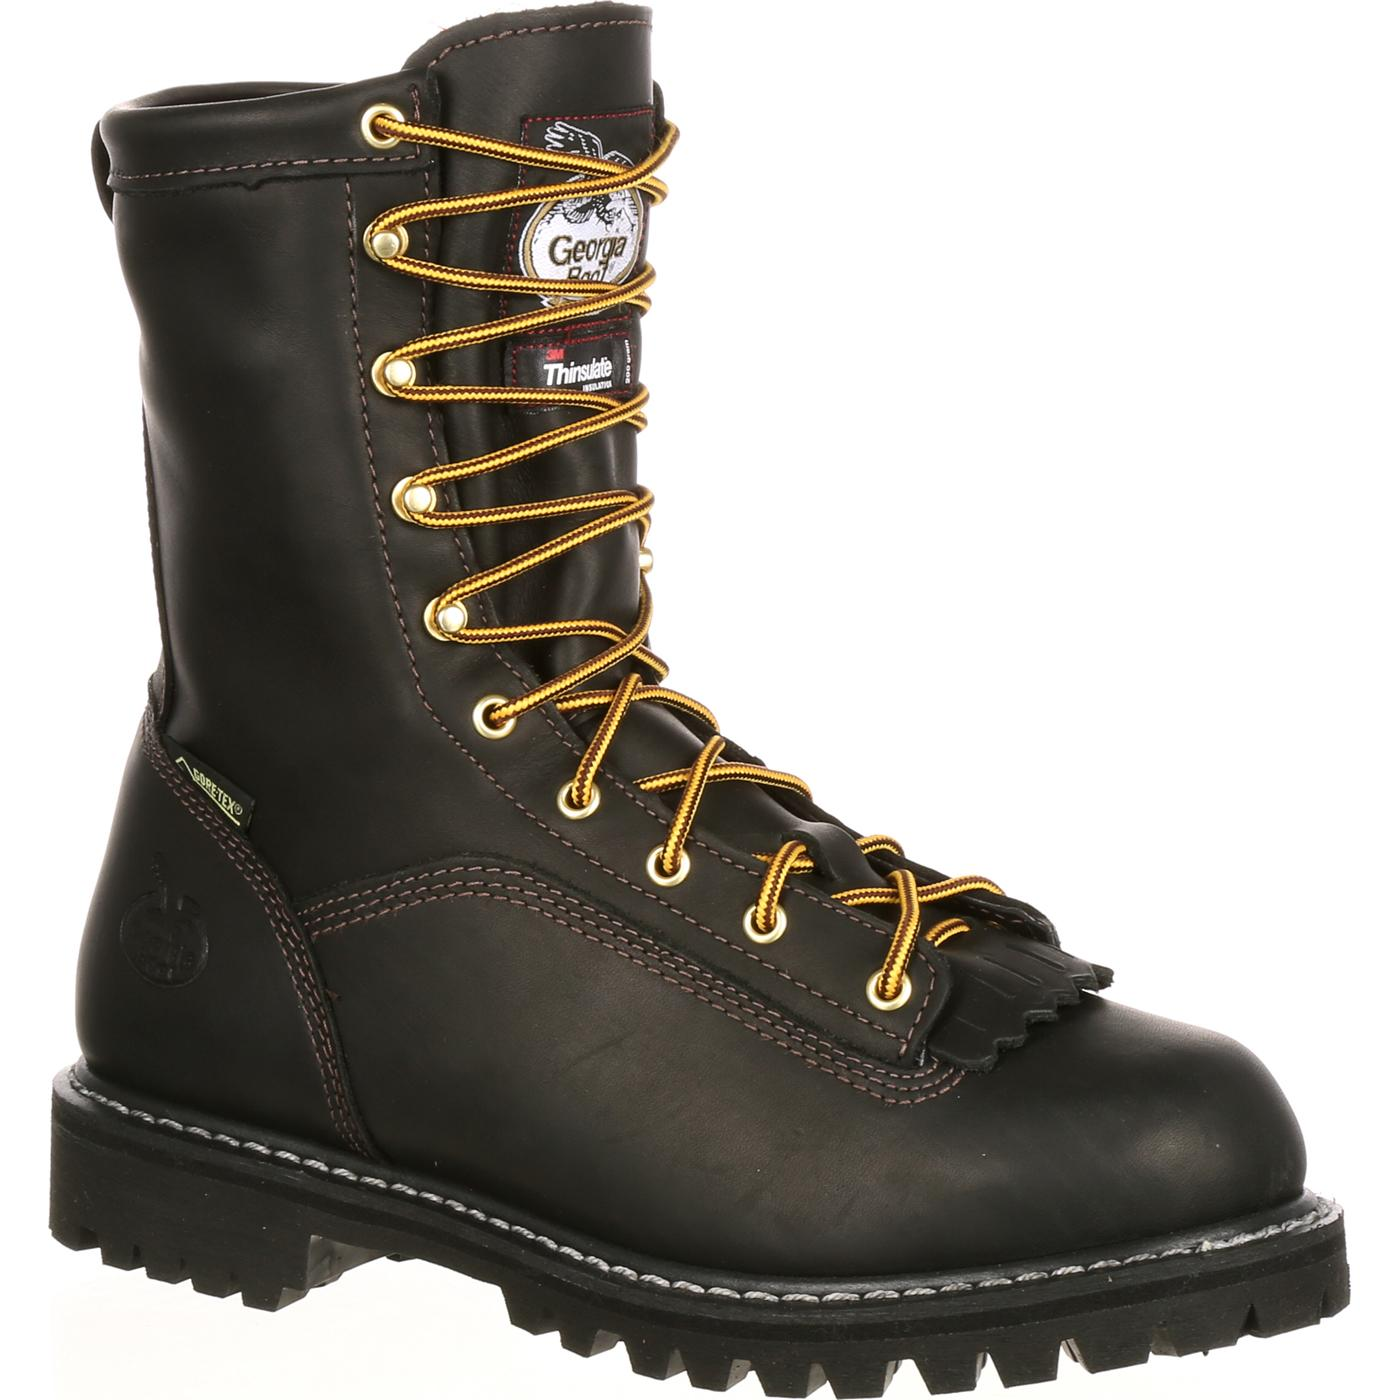 Men's Working Boots - Shop All Work Boots For Men w/ FREE Shipping